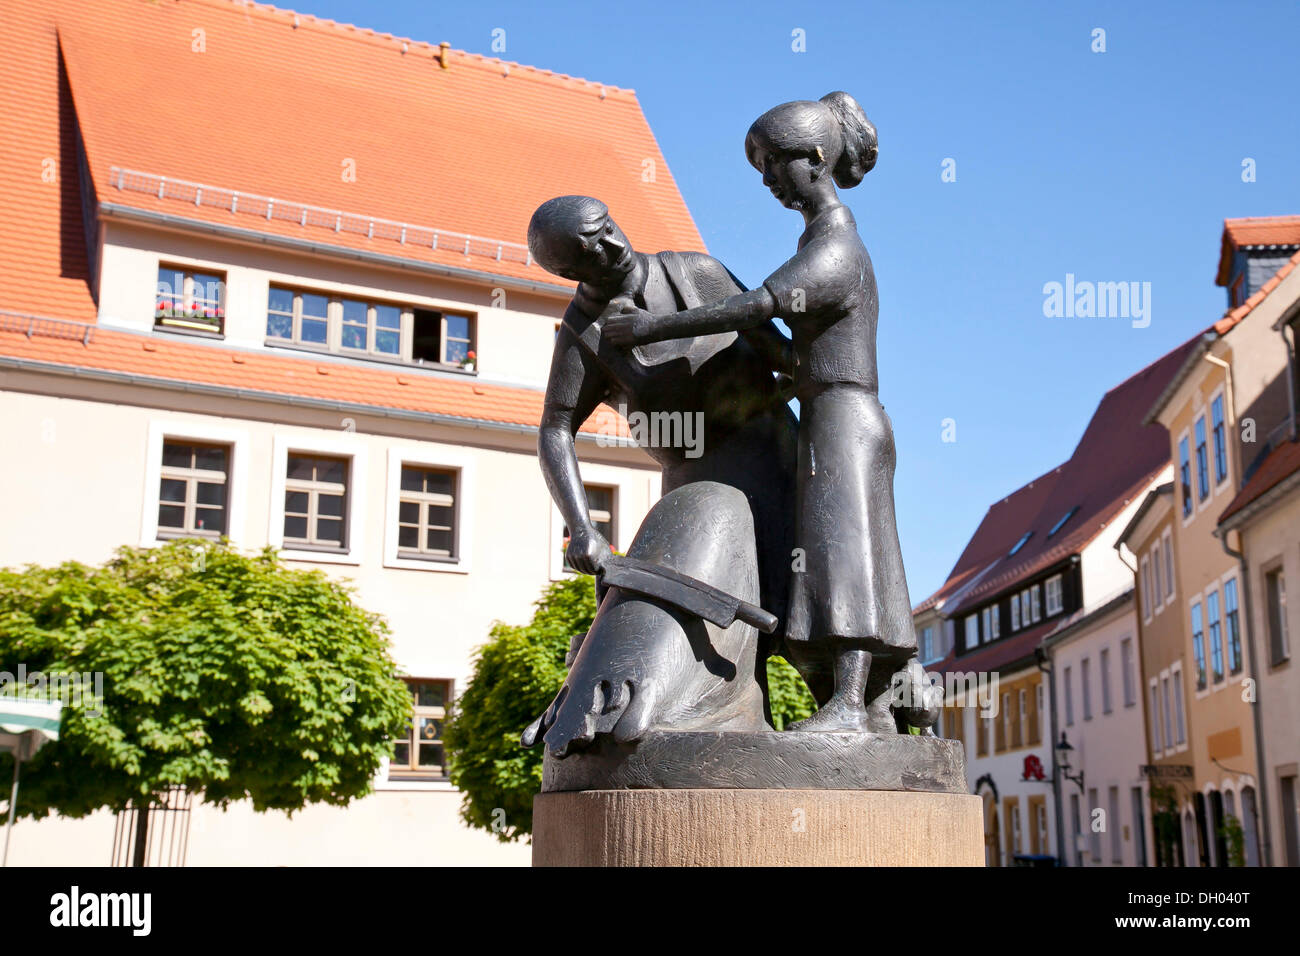 Tanner's Fountain in Untermarkt square, Freiberg, Erzgebirge, Ore Mountains, Saxony - Stock Image